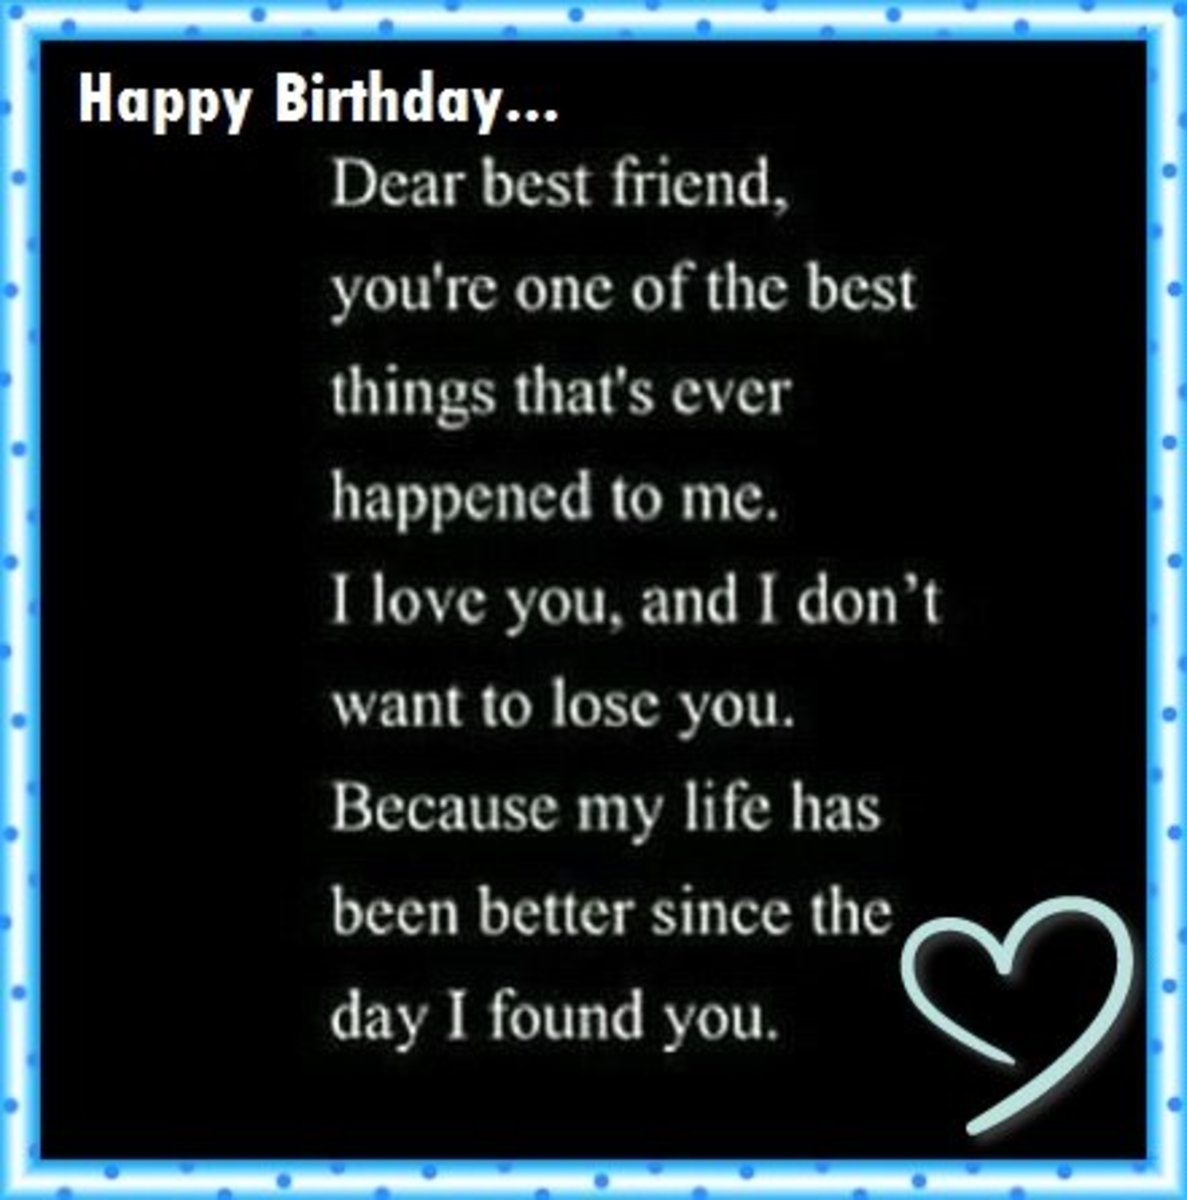 happy birthday best friend letter happy birthday letter to my best friend hubpages 22081